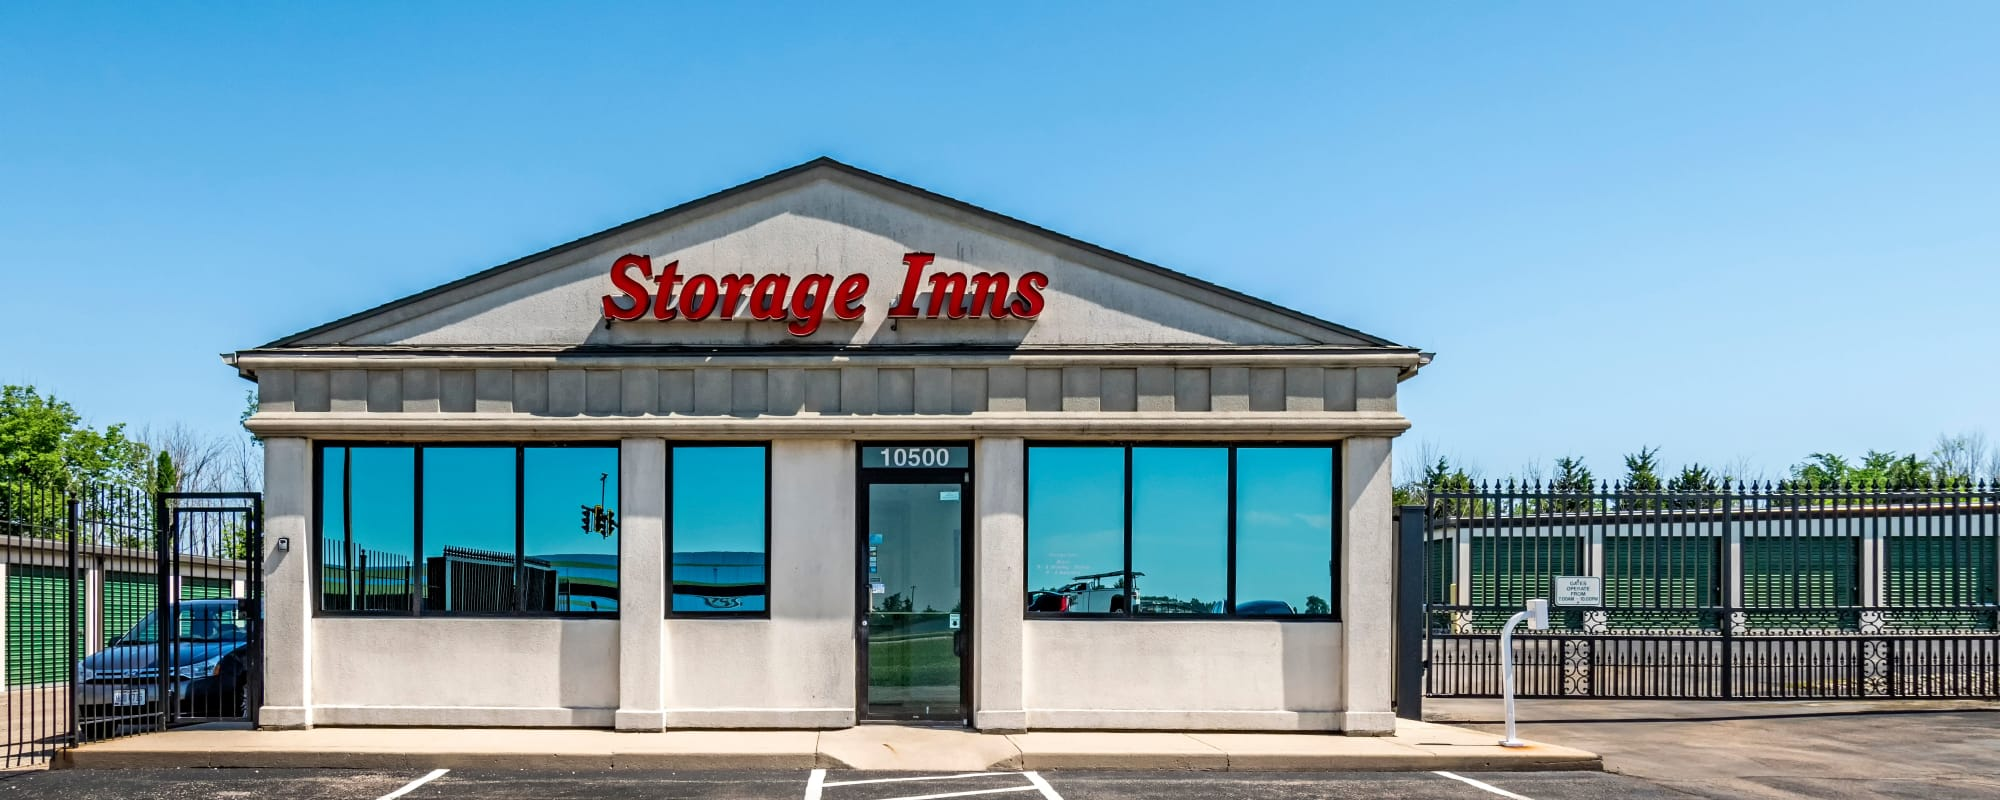 Storage Inns of America in Miamisburg Ohio